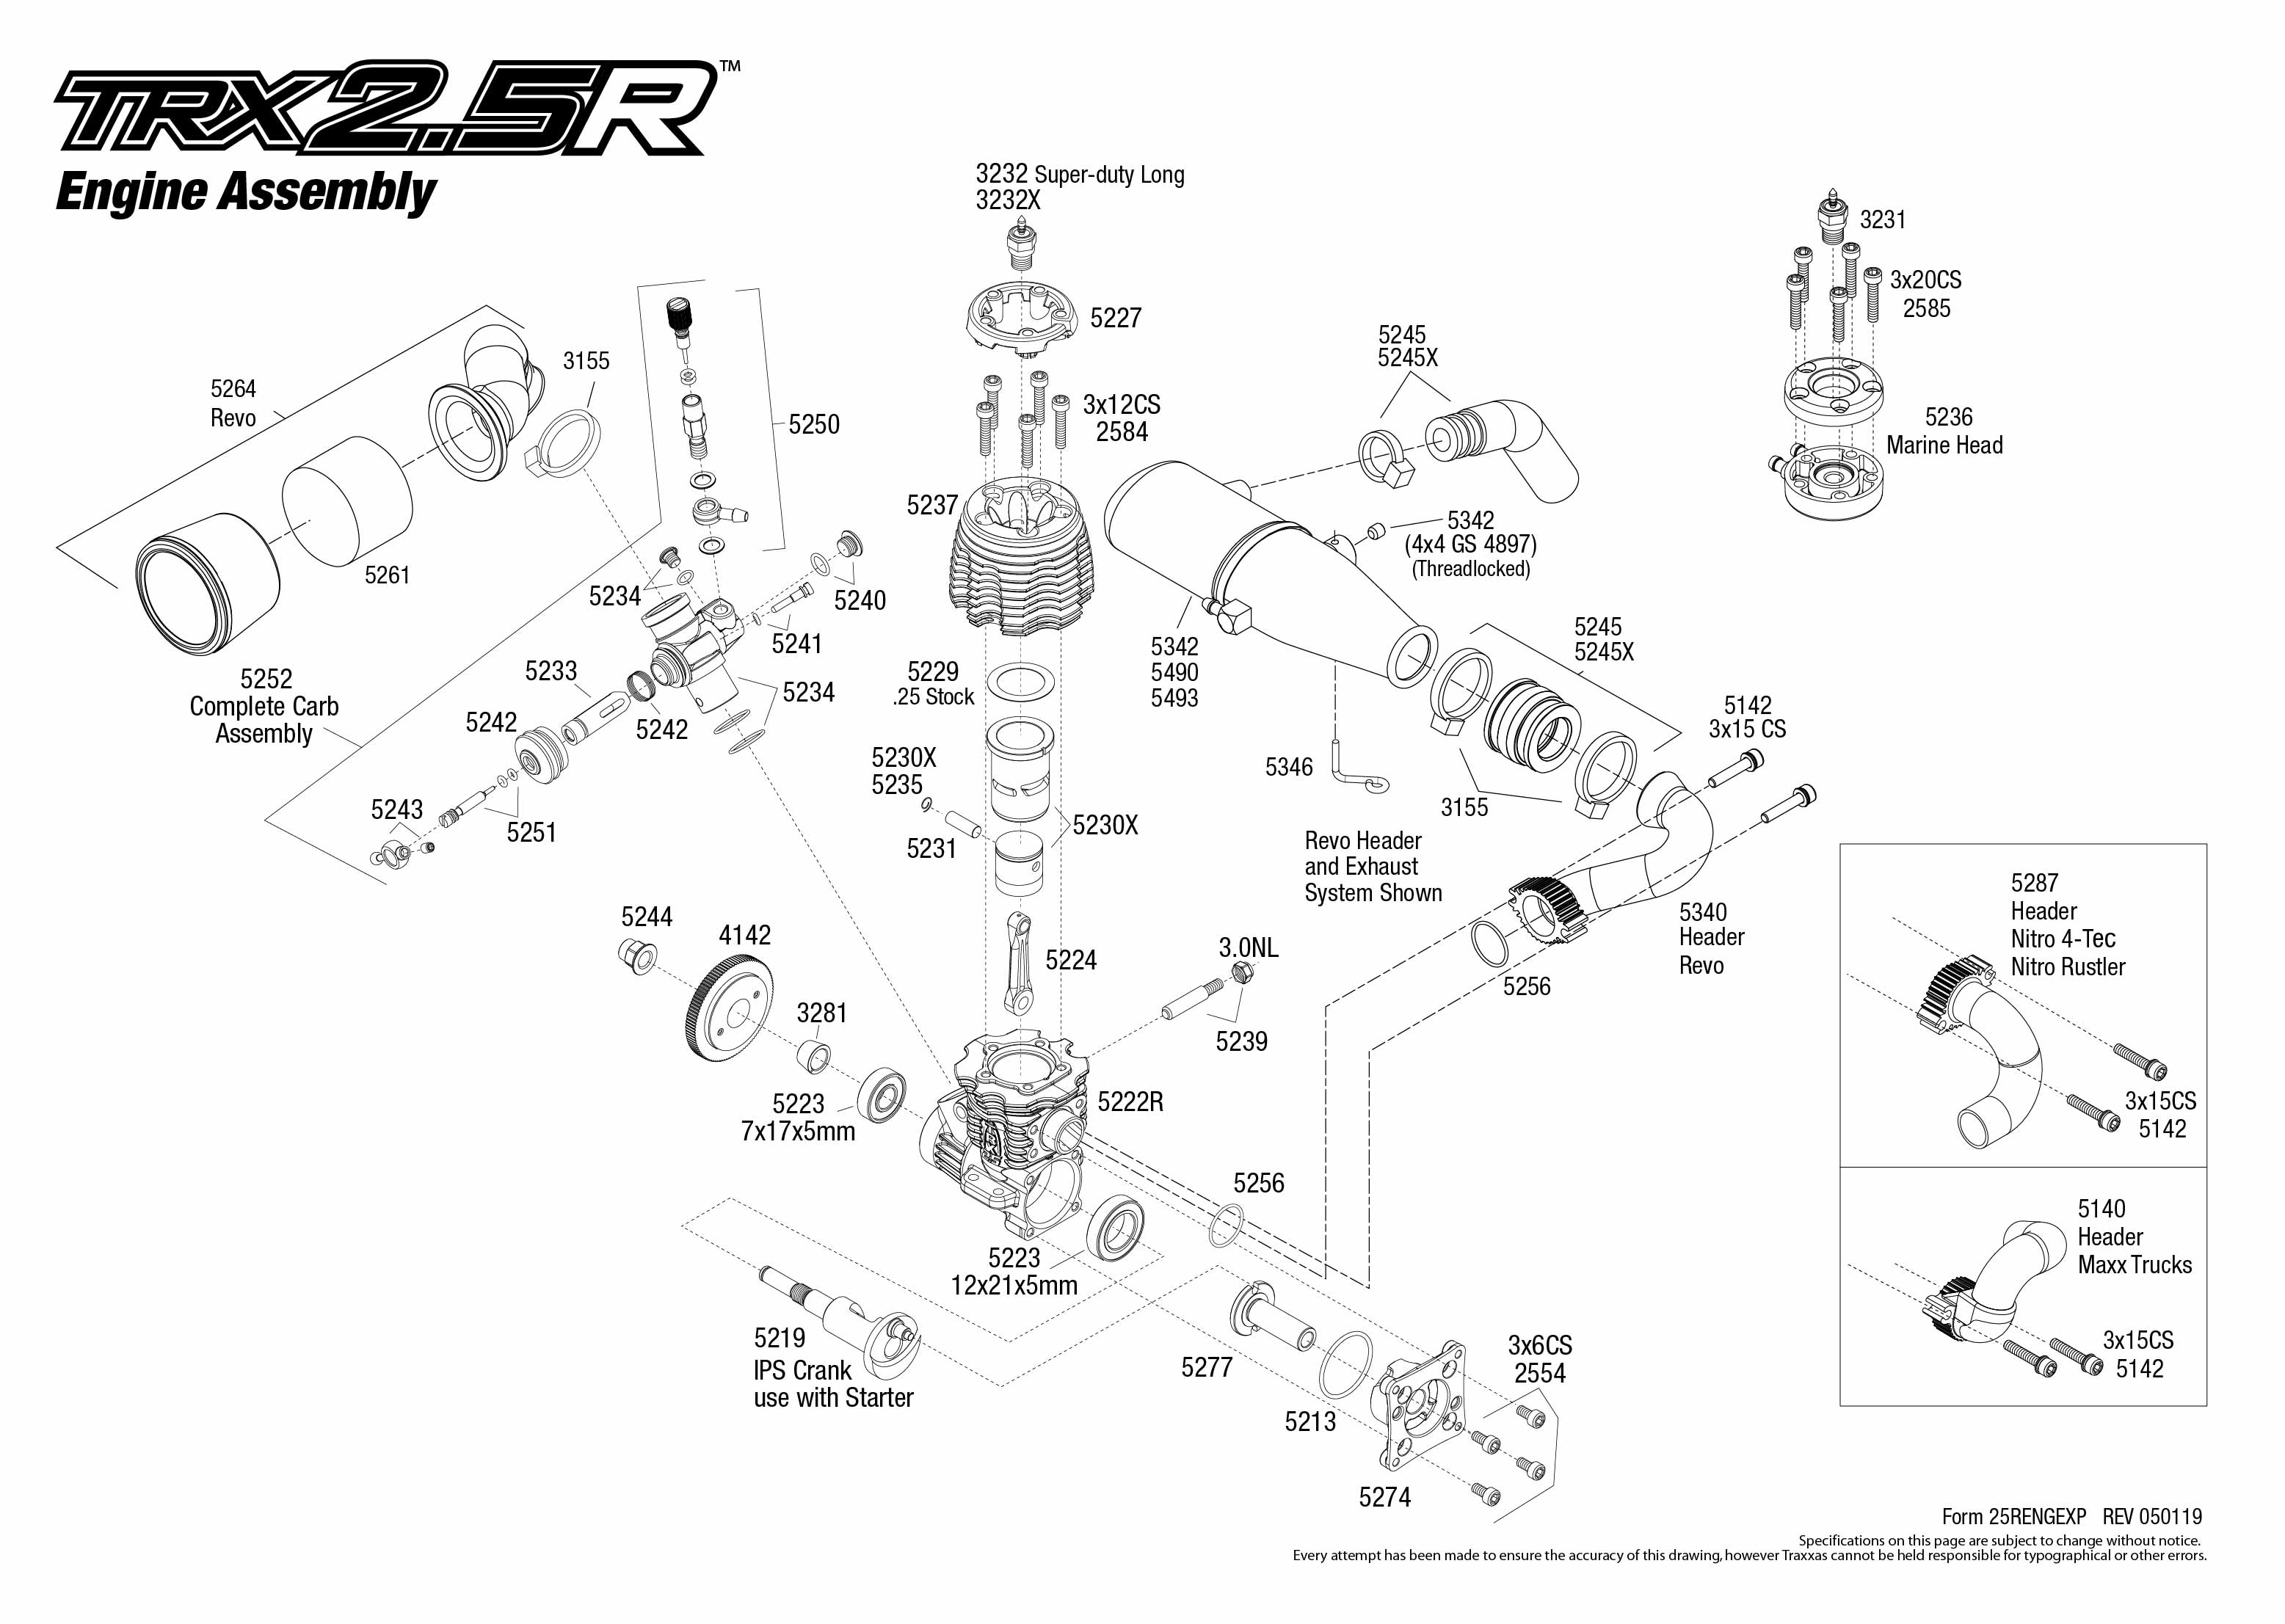 Traxxas Revo Parts Diagram : 26 Wiring Diagram Images